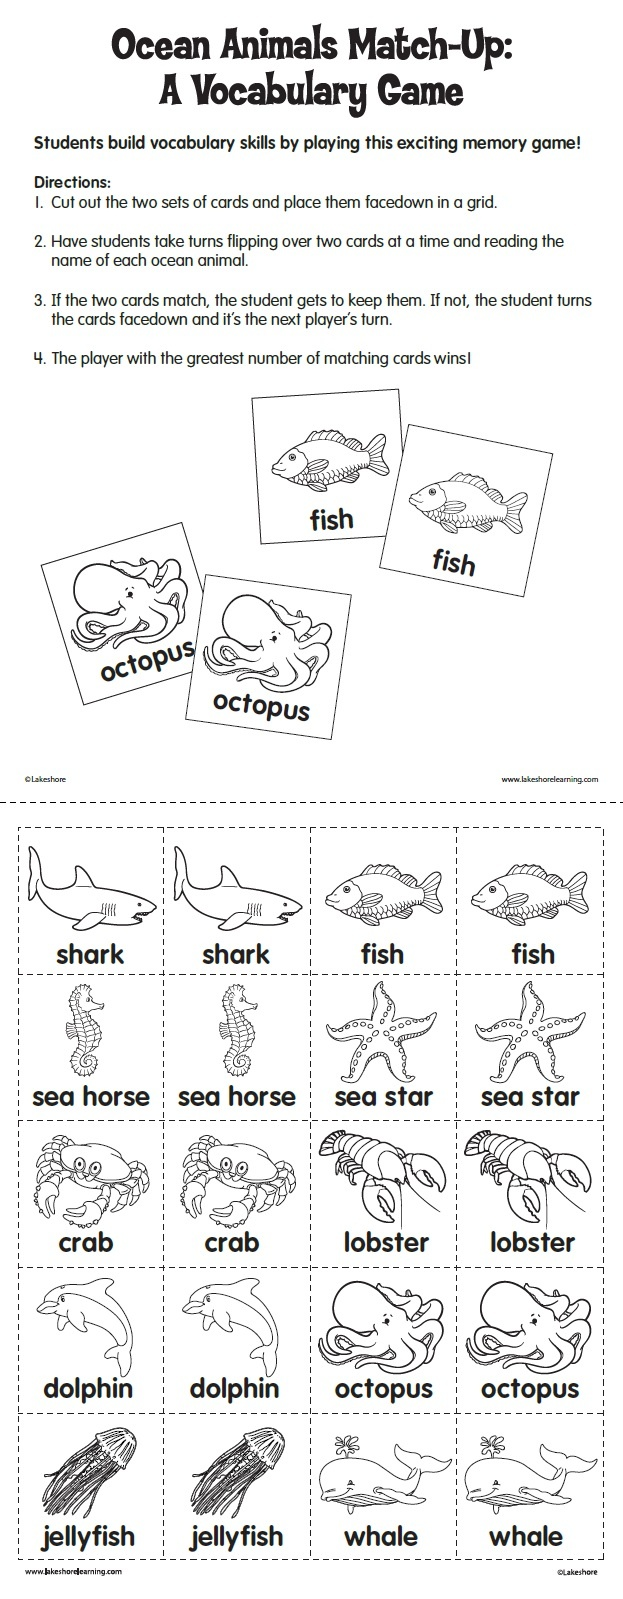 Ocean Animals Match-Up: A Vocabulary Game from Lakeshore Learning: Children build vocabulary skills by playing this exciting memory game!